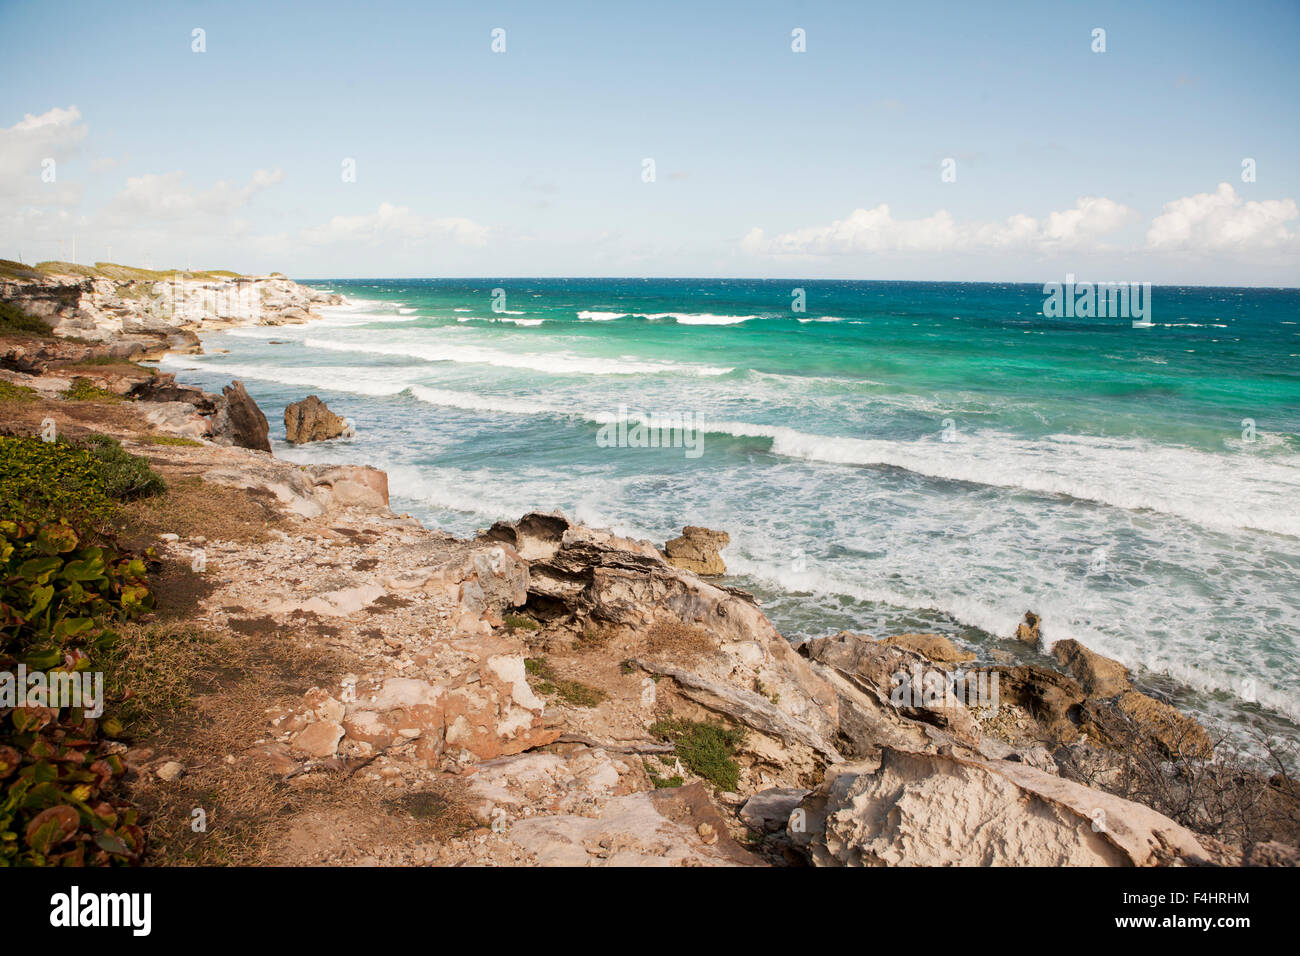 Views of the Caribbean Coast along what tourists call Panoramic Drive, Isla Mujeres, Quintana Roo, Mexico. - Stock Image